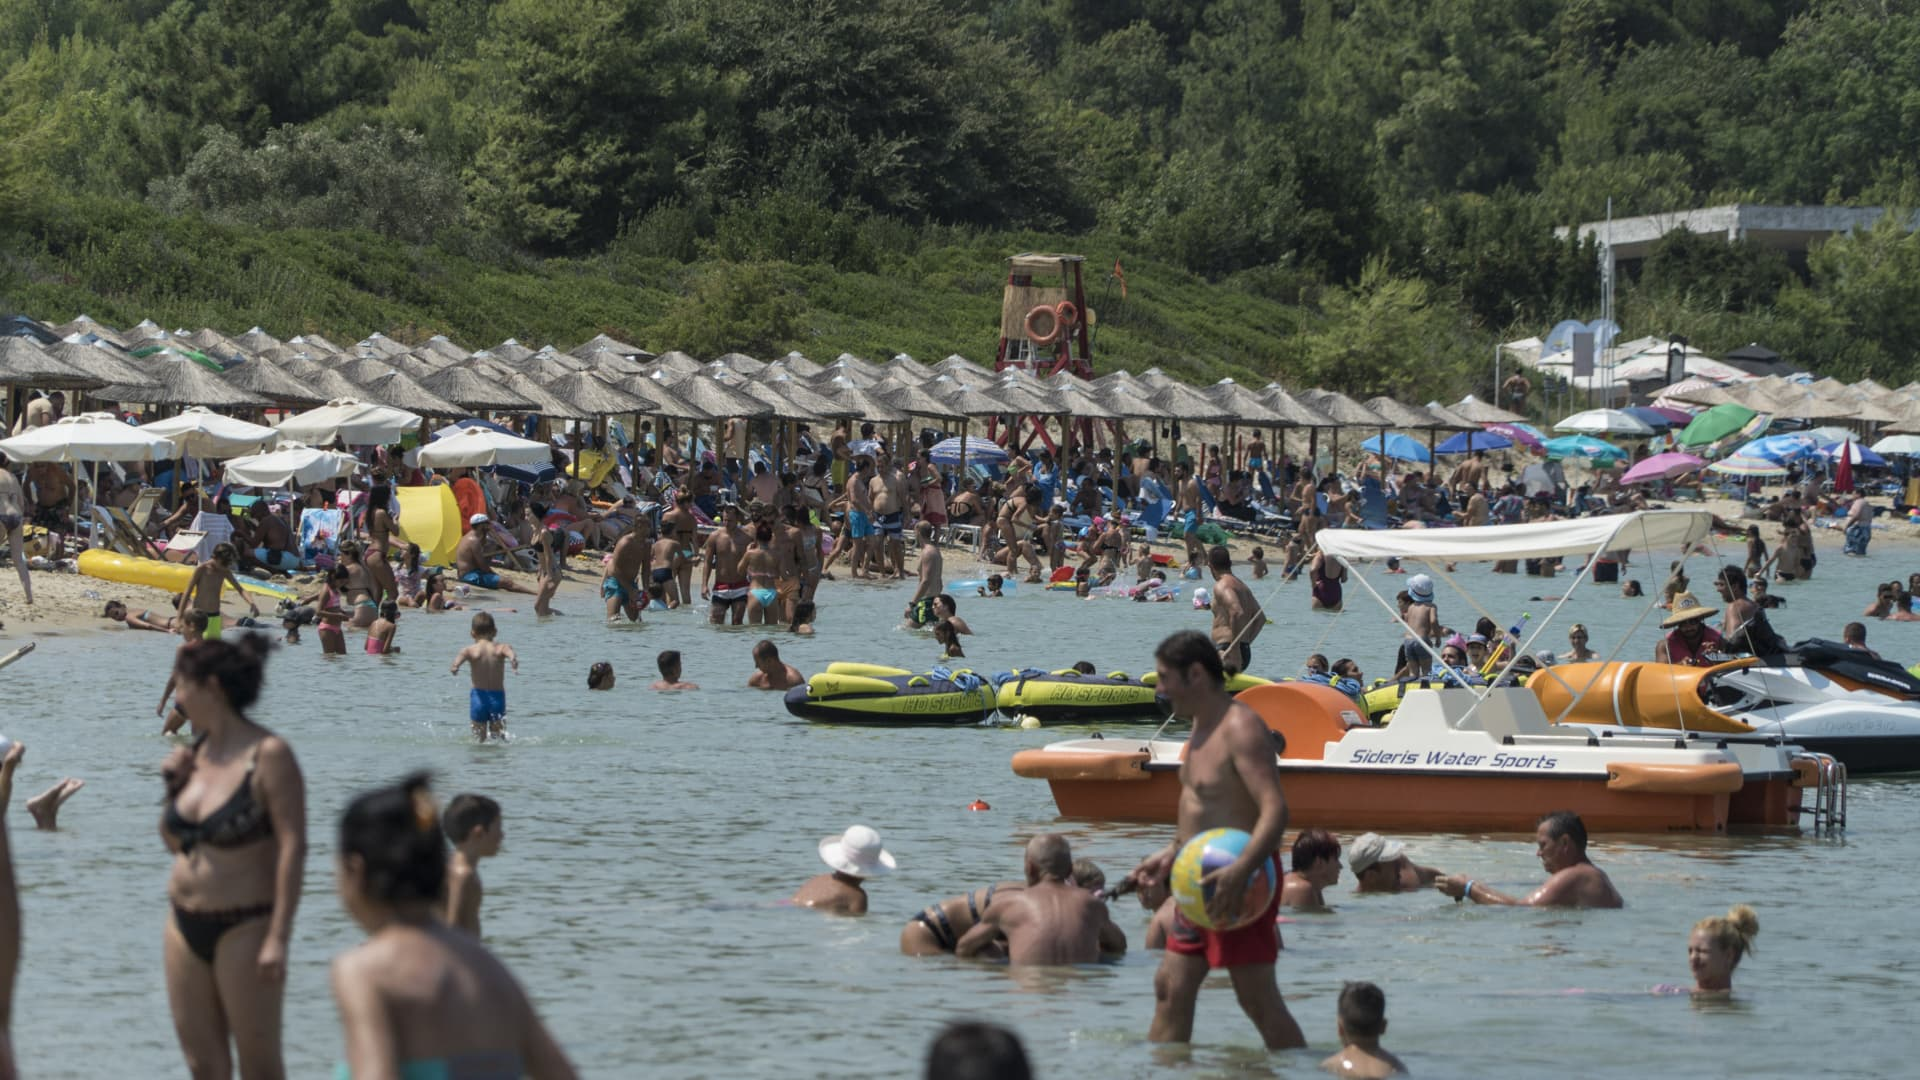 Busier times in Paliouri beach, Greece: This image was taken in 2017 which was considered to be one of the best performing summers, in terms of visitors arrivals.